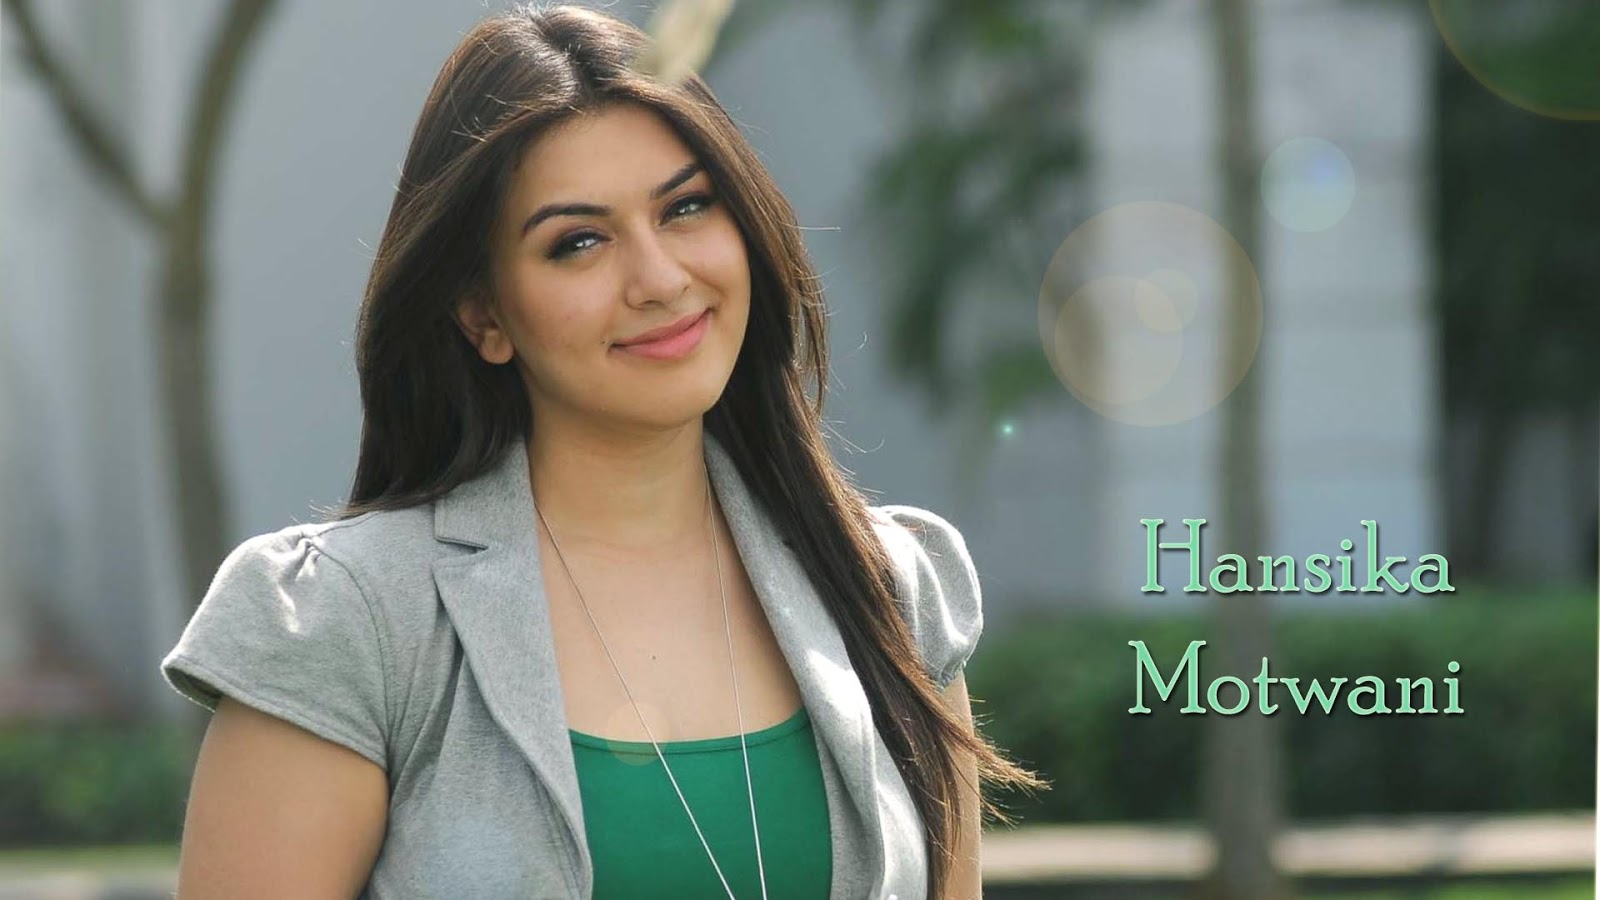 Cute HD wallpaper of Hansika Motawani for download